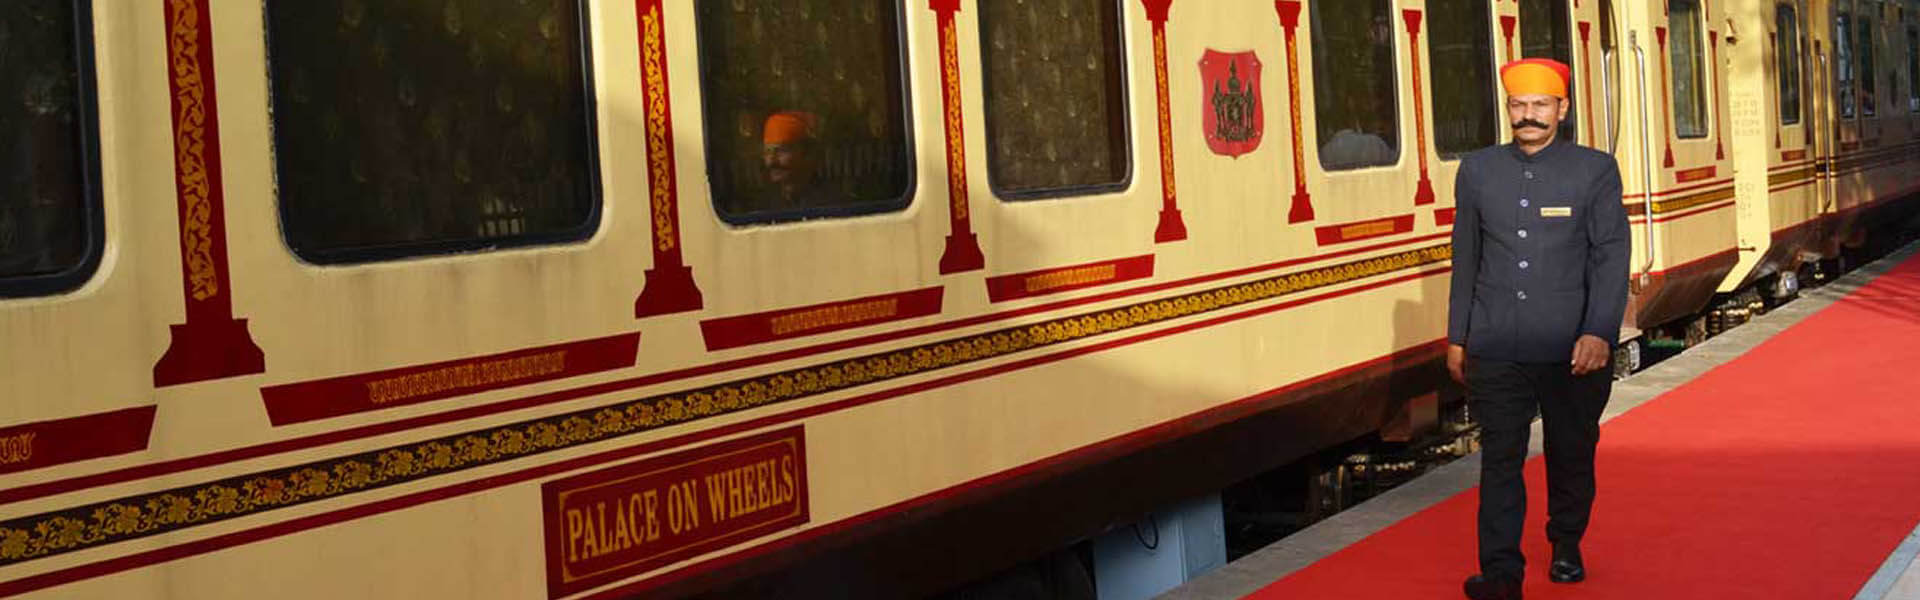 Palace on Wheels,luxury train india,luxury train journey in india